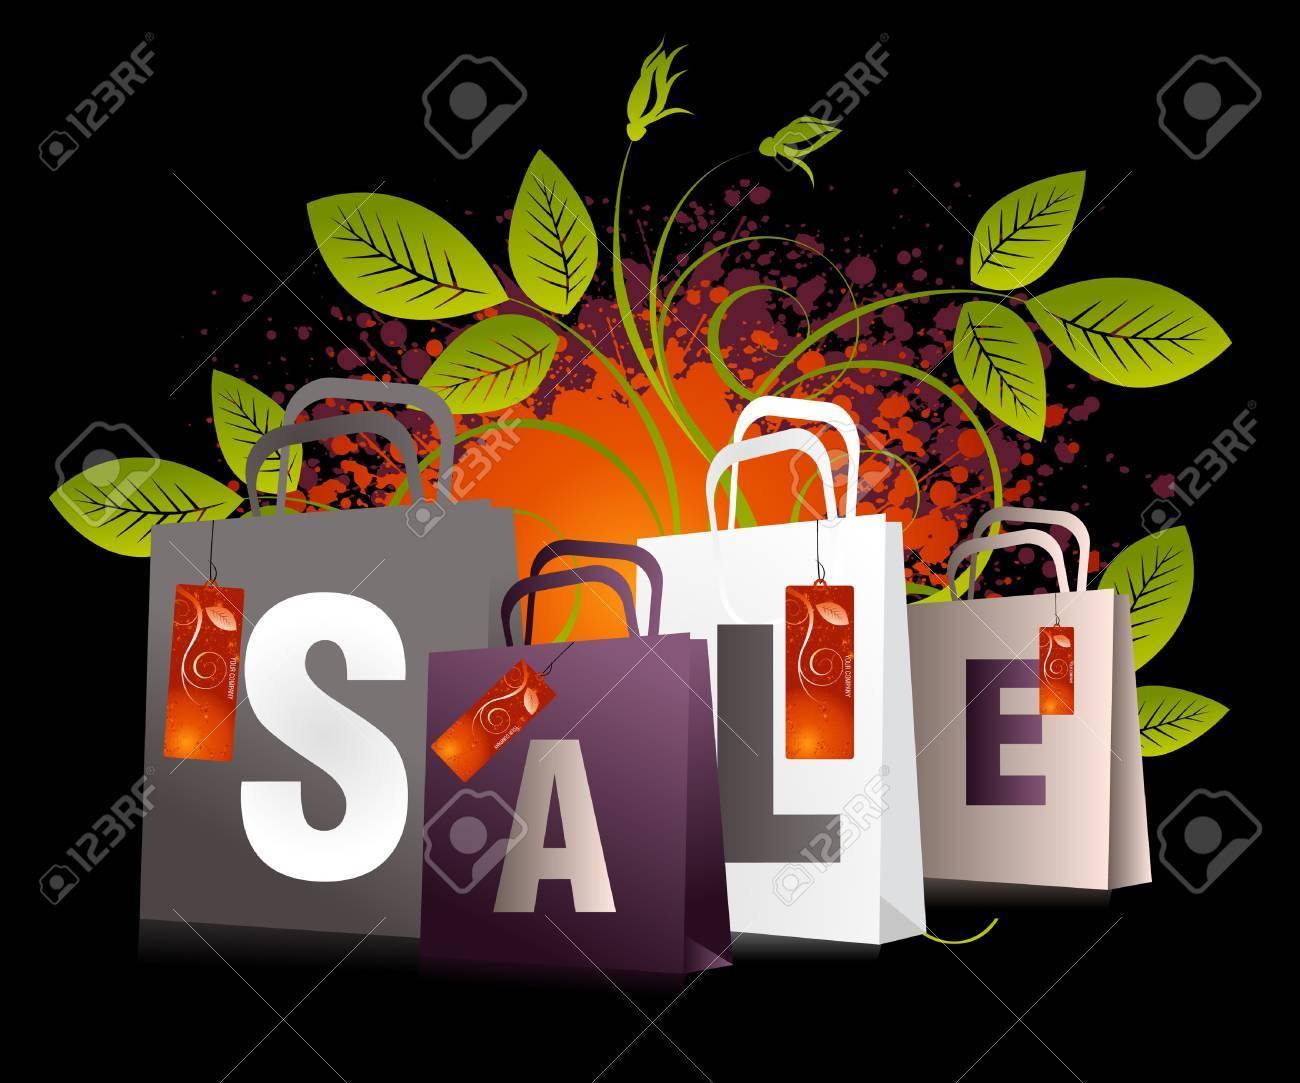 Sales and discount concept Illustration Stock Vector - 7866616